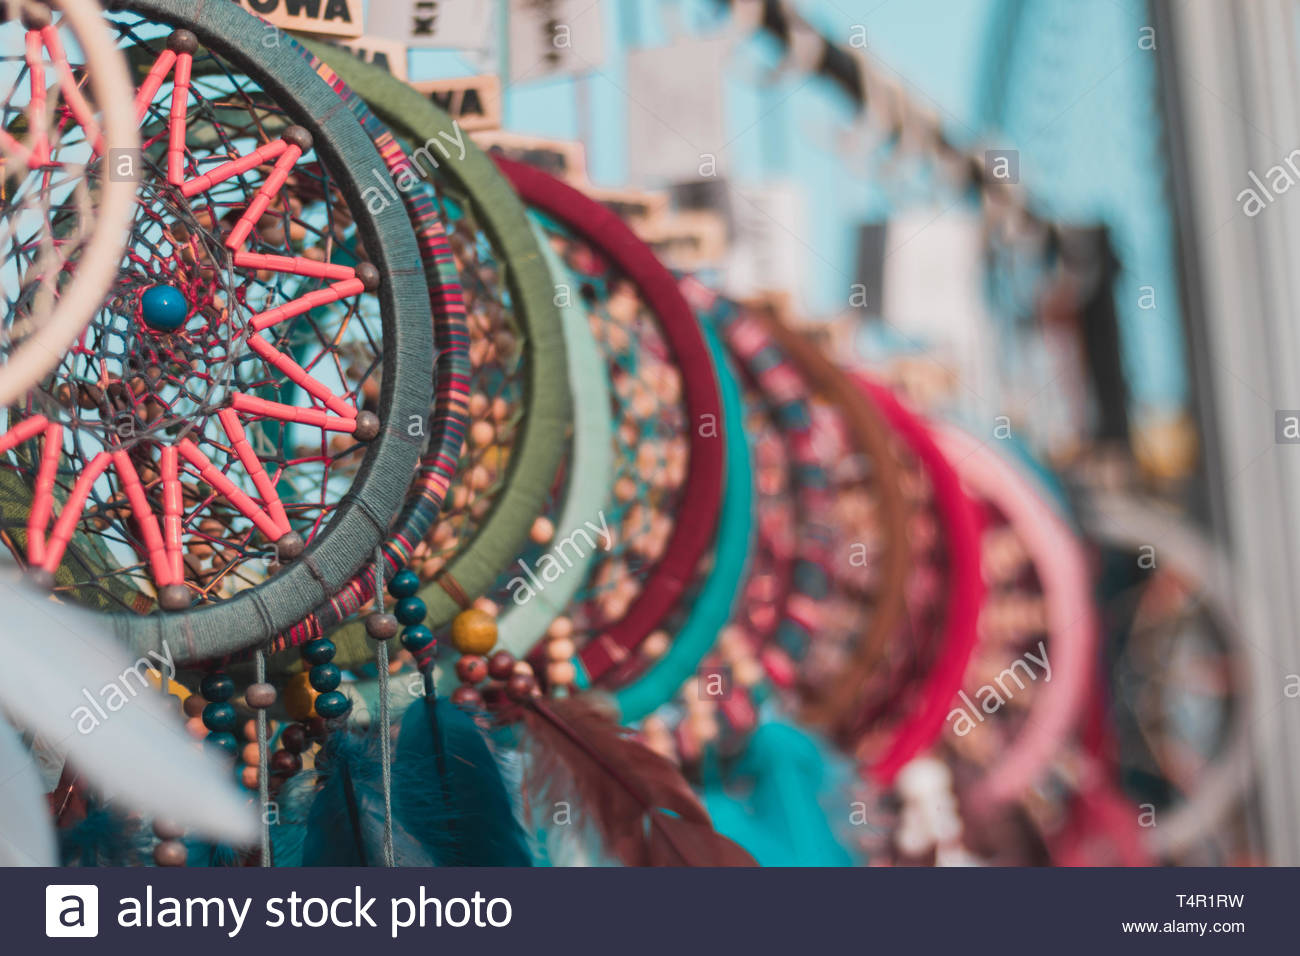 Dream Catchers Stock Photos & Dream Catchers Stock Images